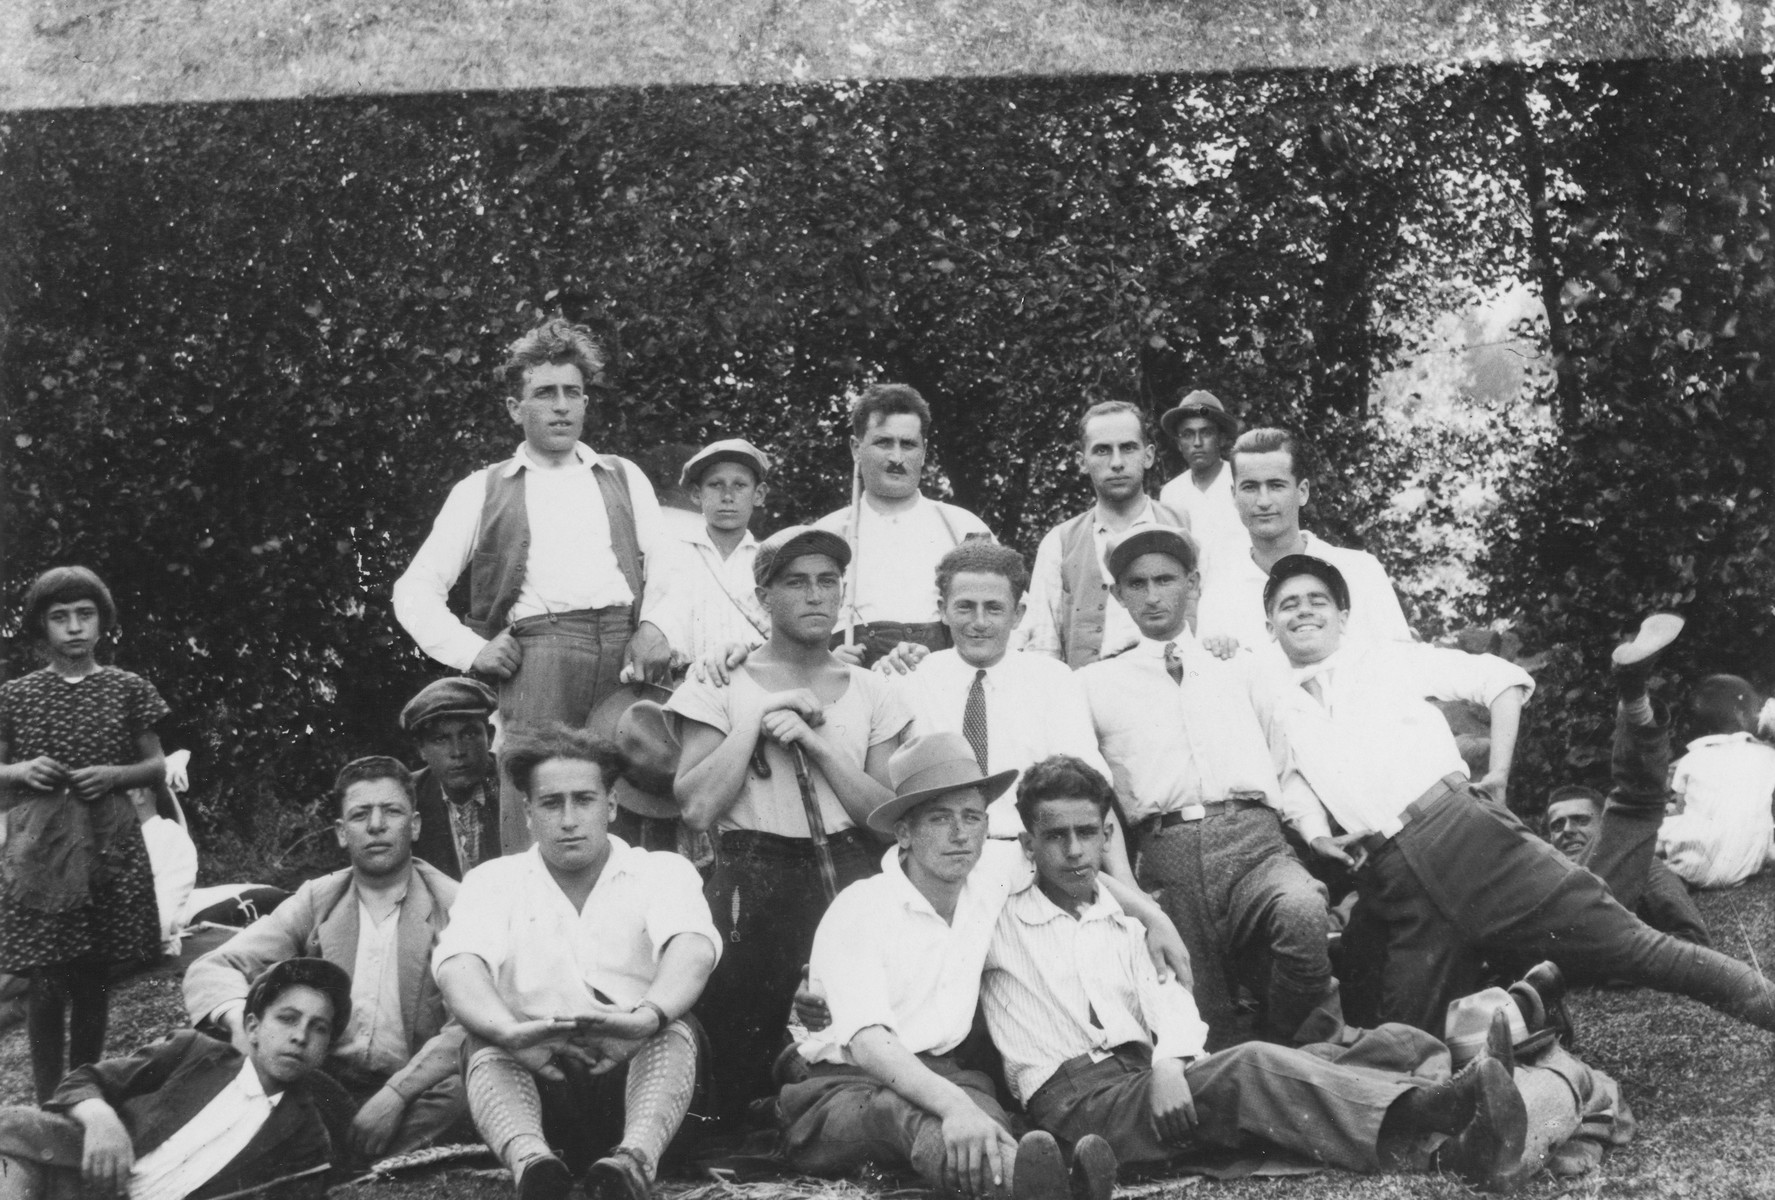 A group of Jewish young men pose while on an excursion in the Macedonian woods.